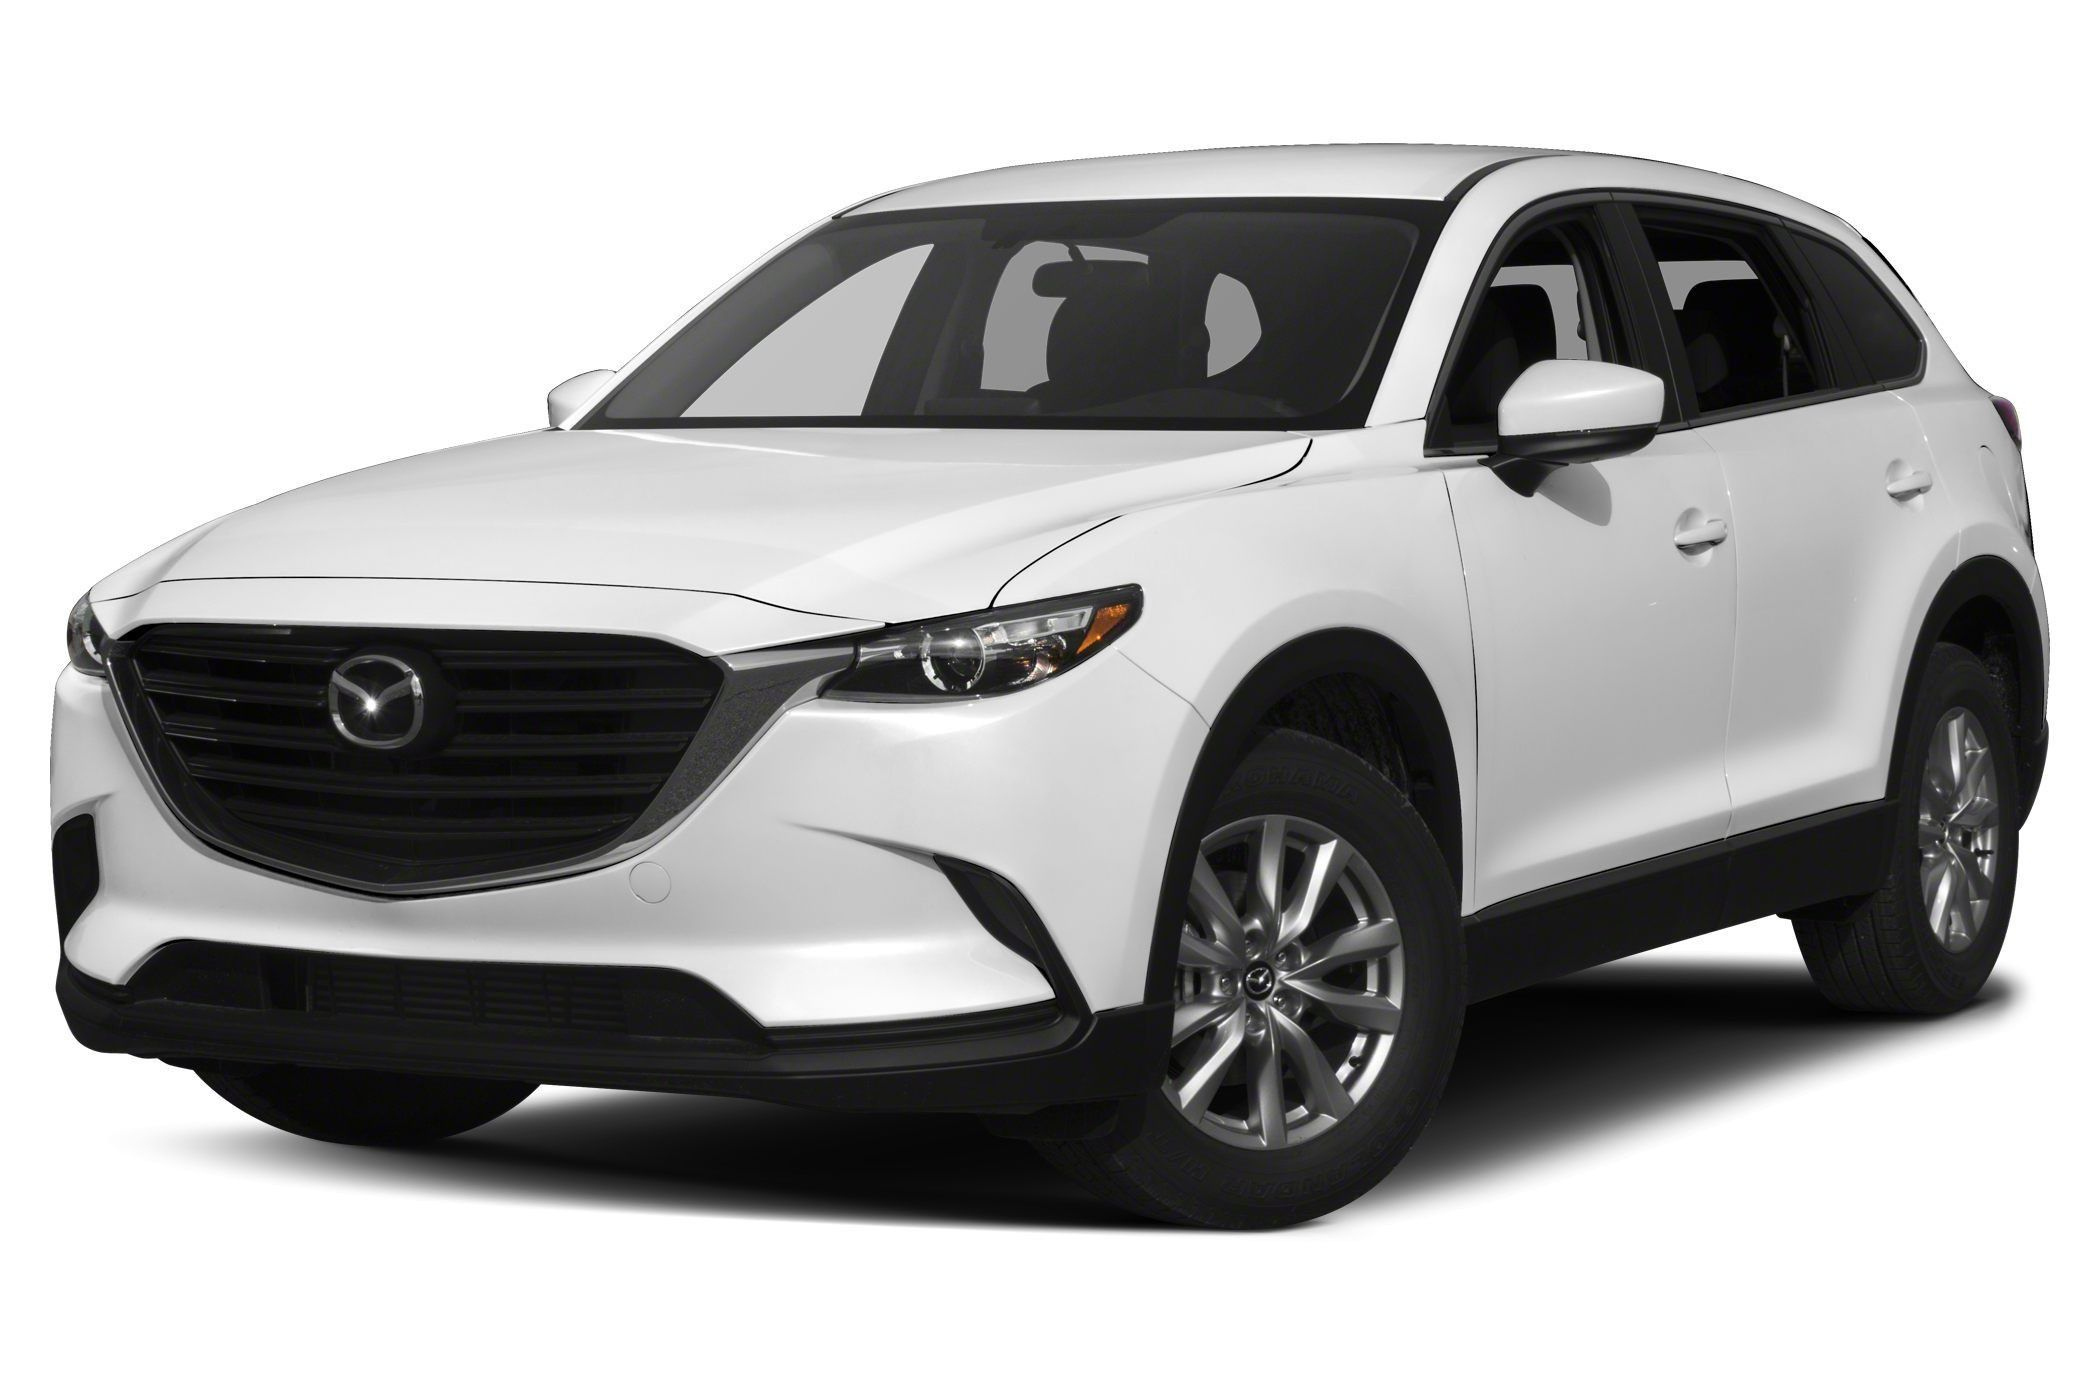 The 2020 Mazda Cx 5 Concept Redesign And Review Car Price 2019 Mazda Sedan